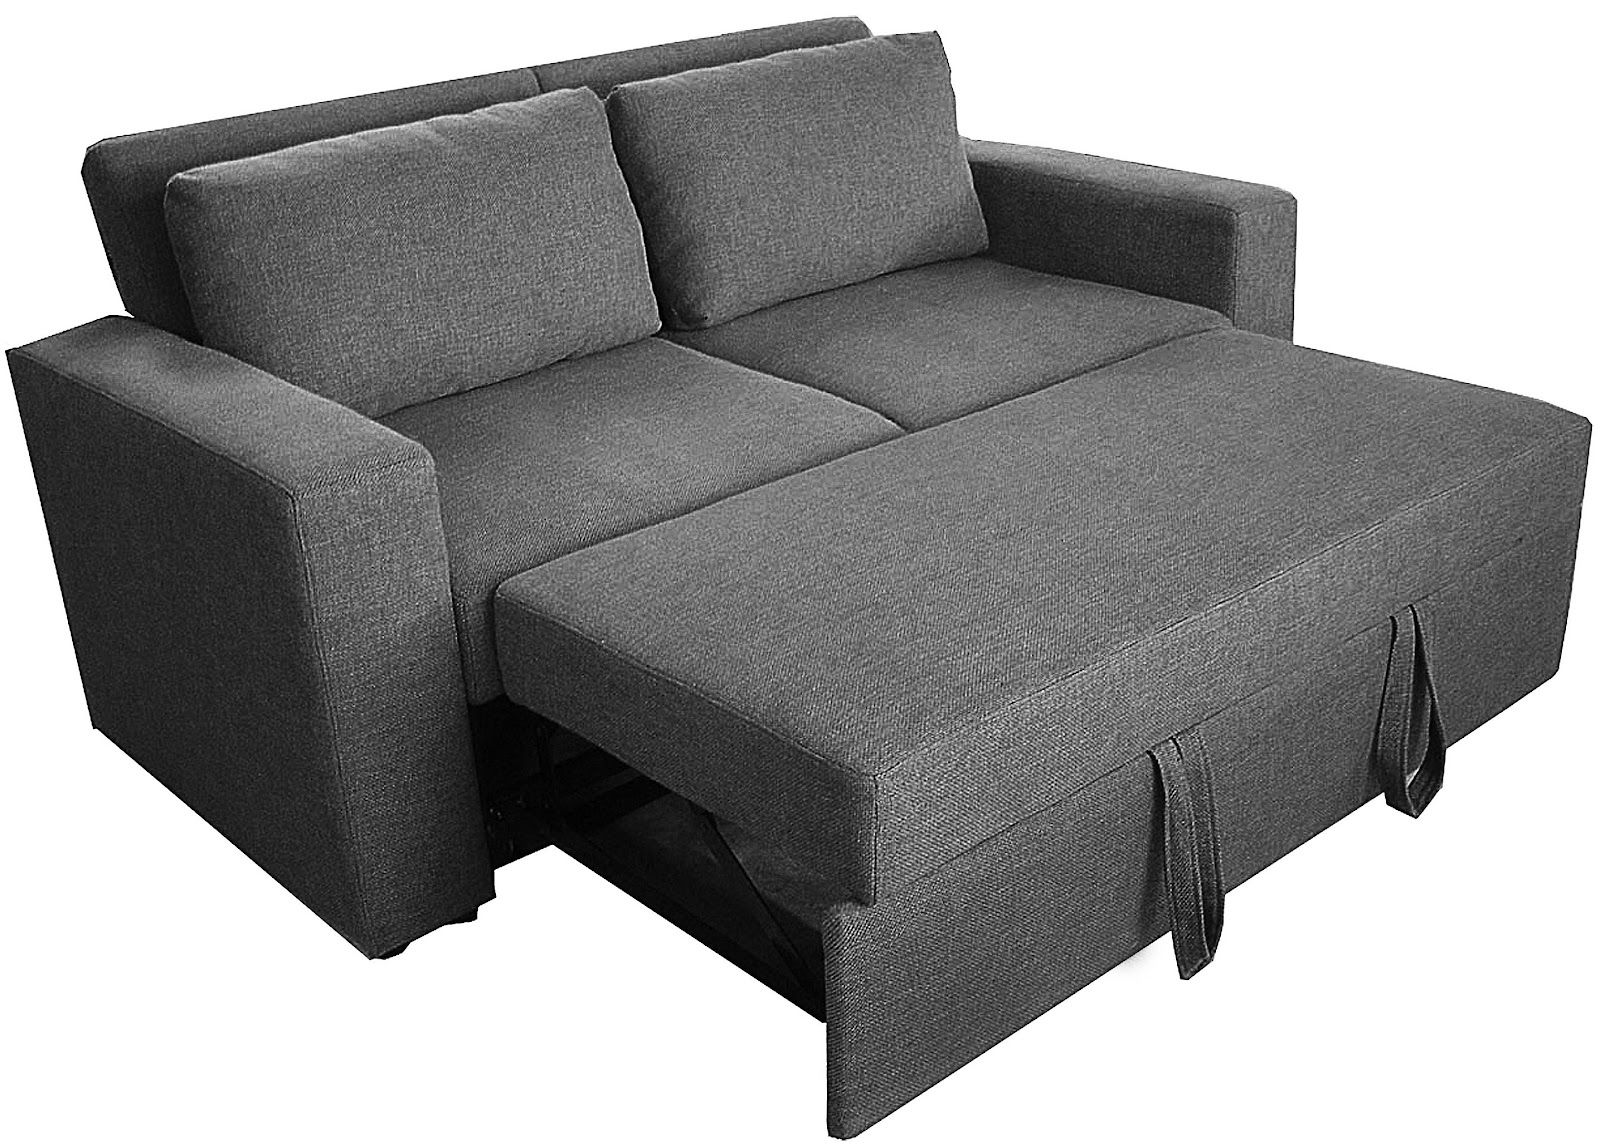 Pull Out Sleeper Sofa In 2020 Pull Out Sofa Bed Ikea Sofa Bed